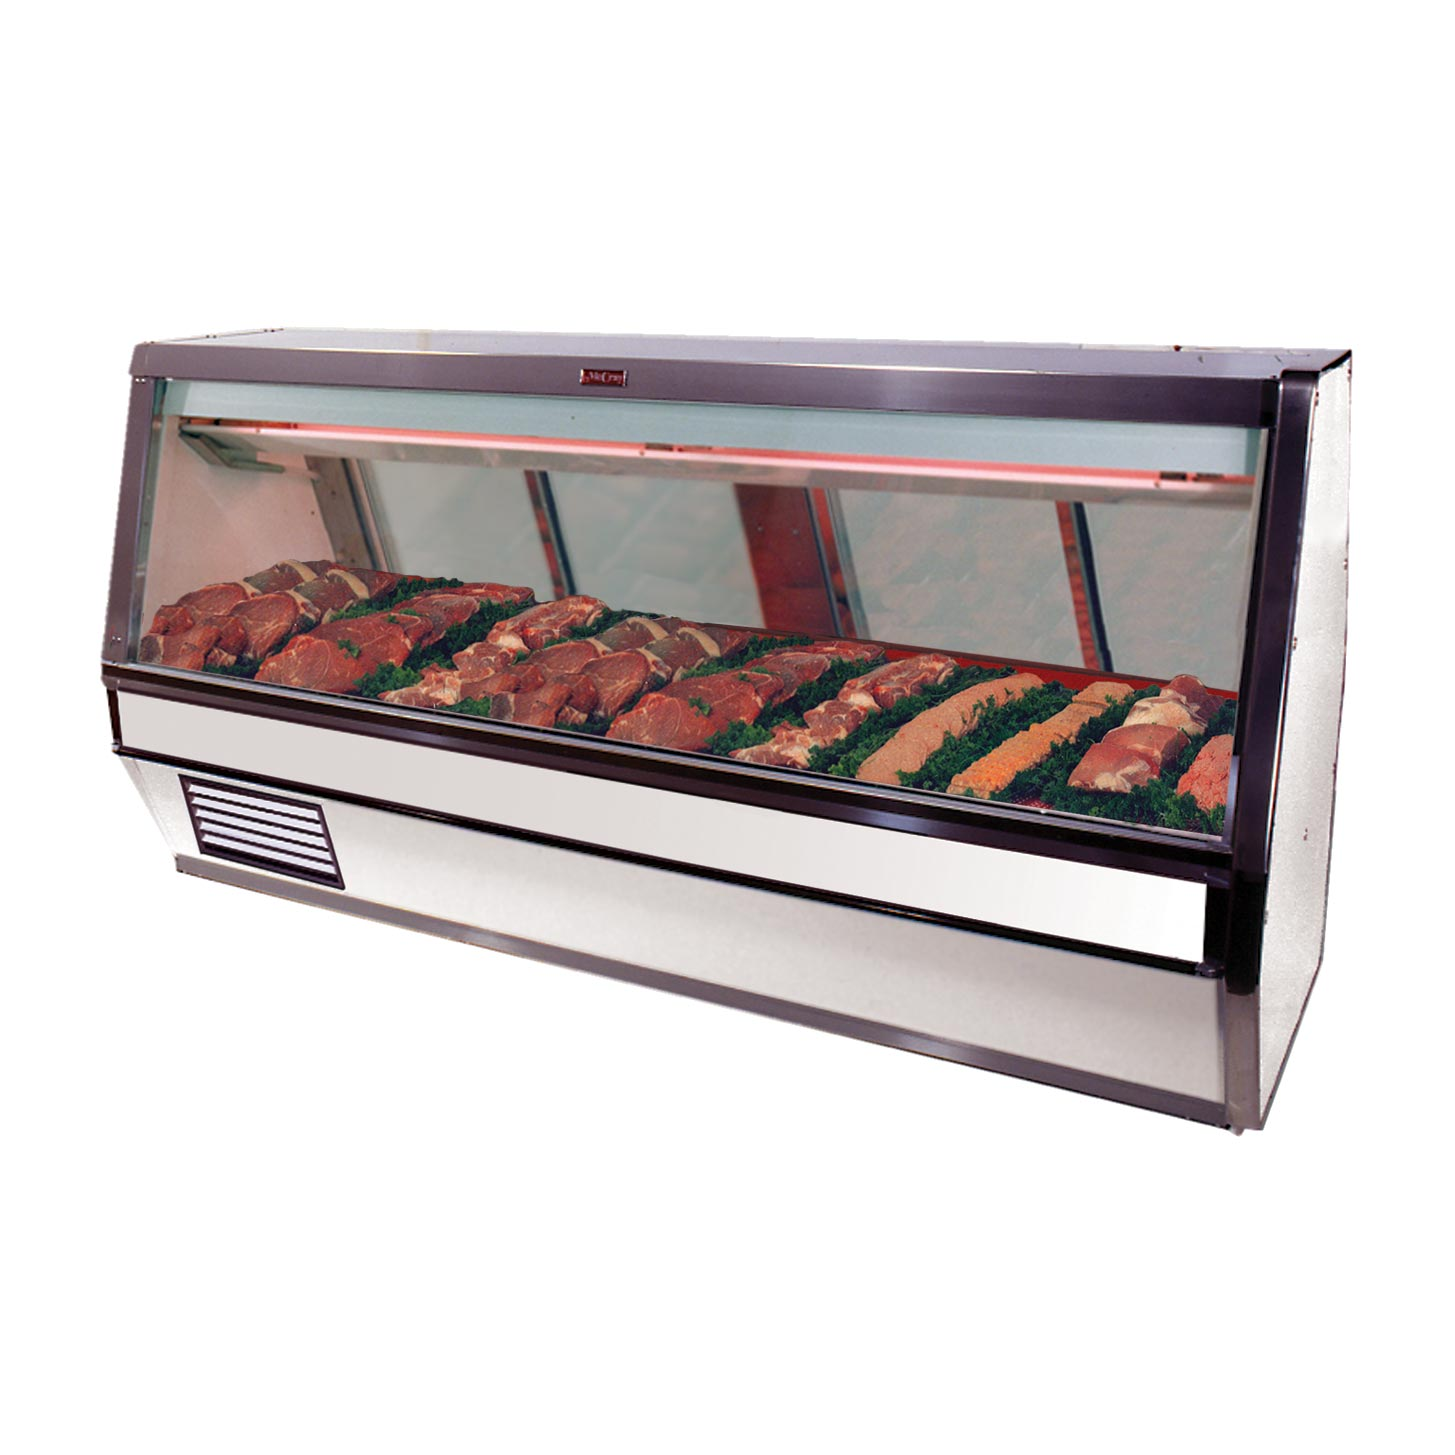 Howard-McCray SC-CMS40E-12-LED display case, red meat deli